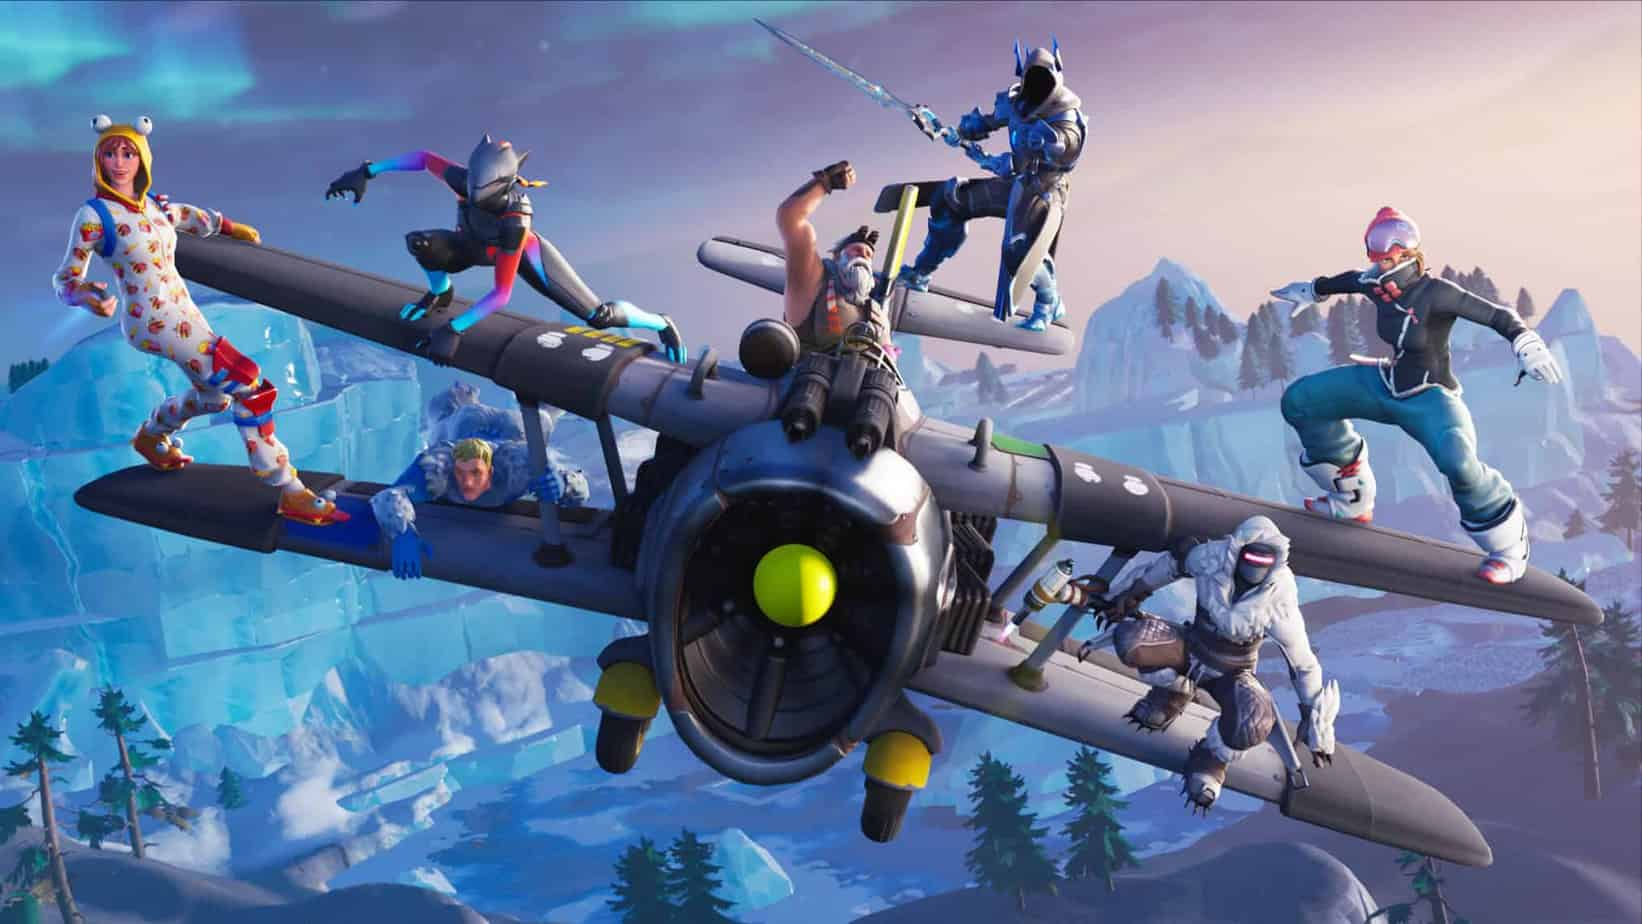 PlayStation 4 opened up for Fortnite on 2018